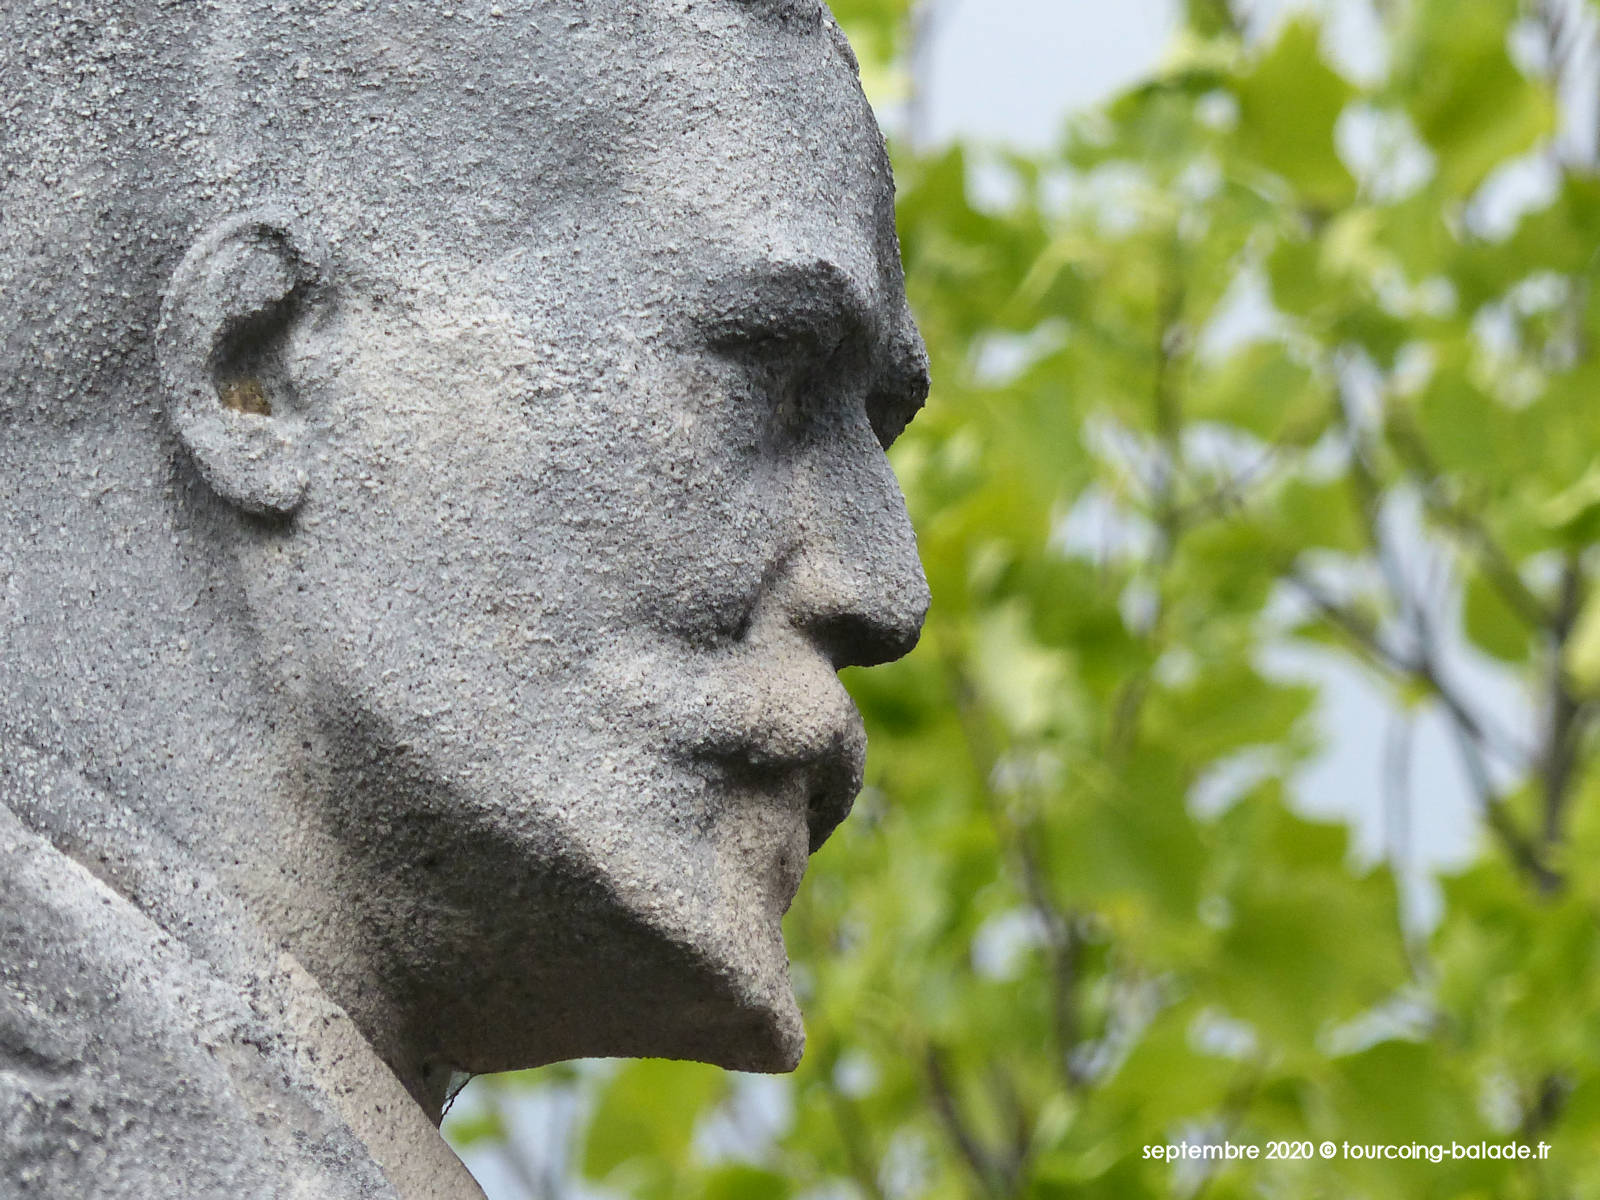 Statue Gustave Dron, Tourcoing 2020